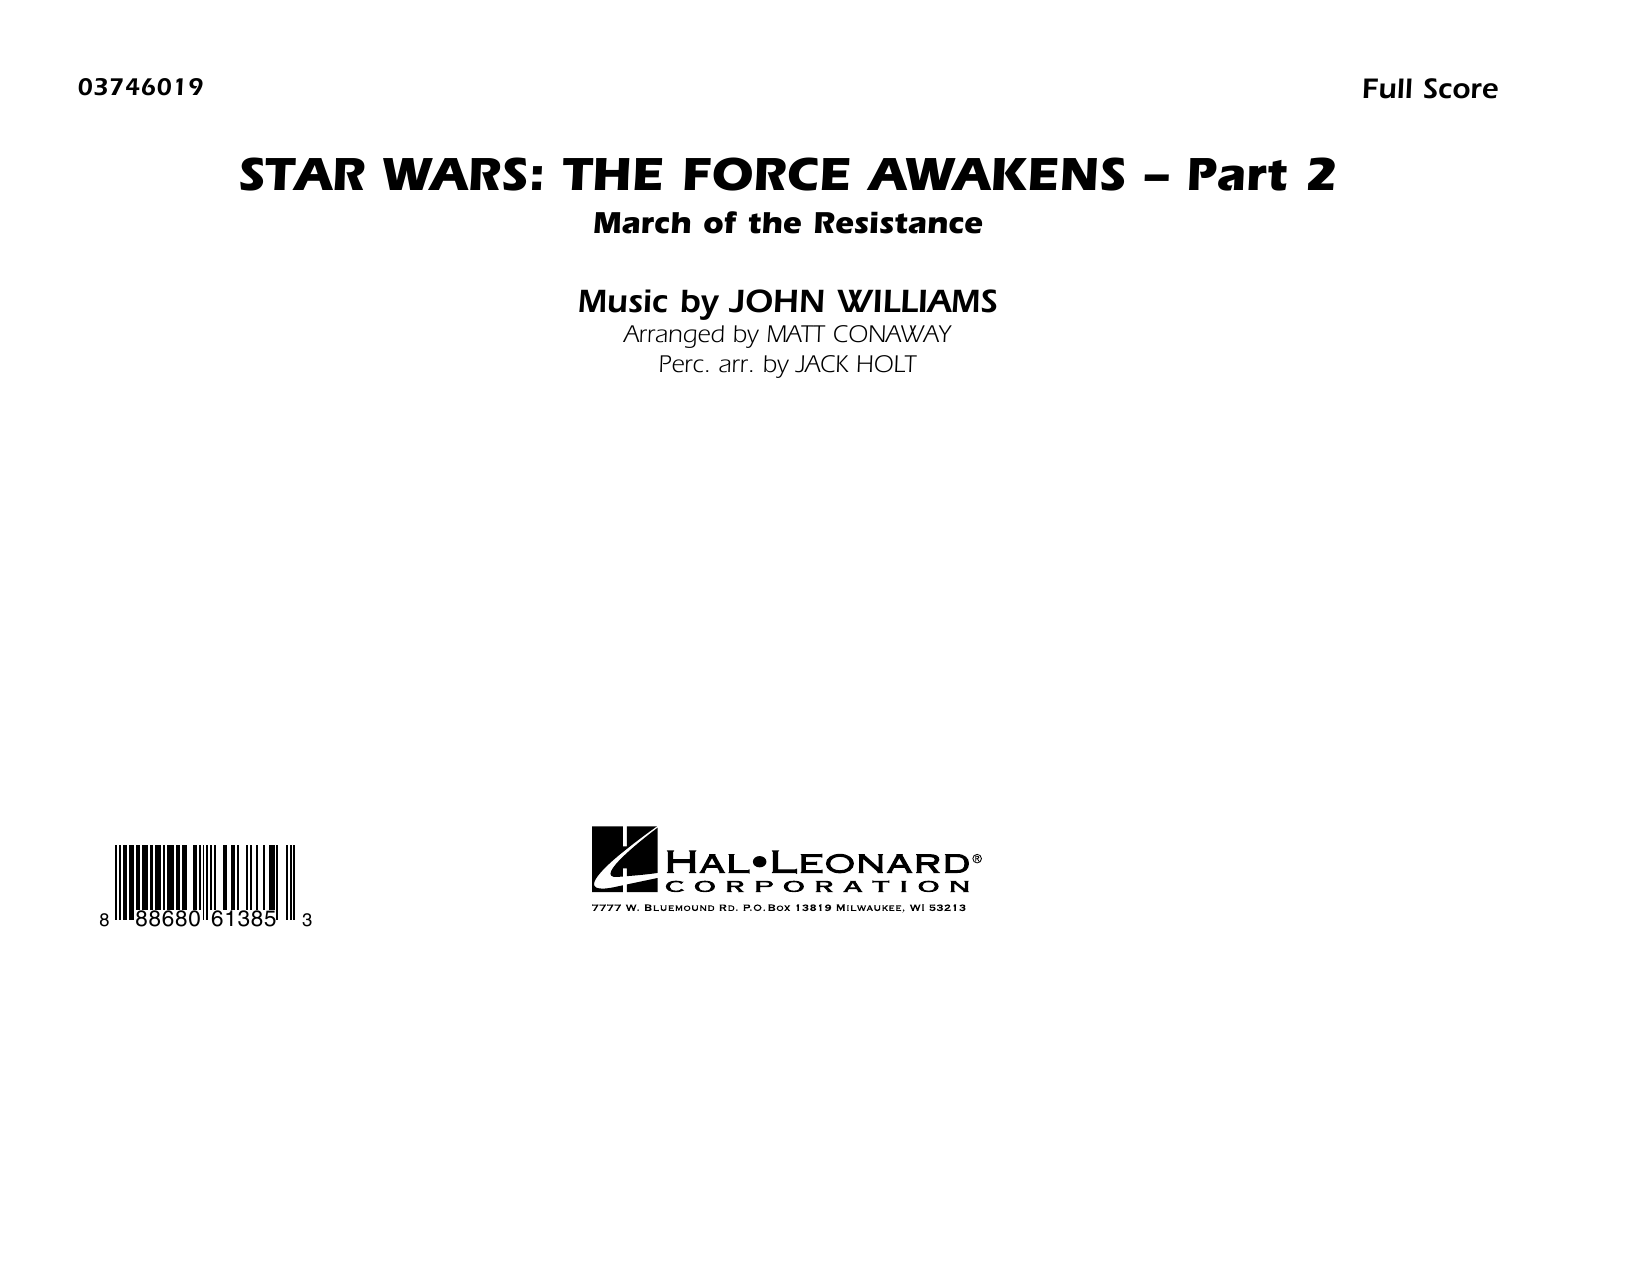 Star Wars: The Force Awakens - Part 2 (COMPLETE) sheet music for marching band by Matt Conaway and John Williams. Score Image Preview.